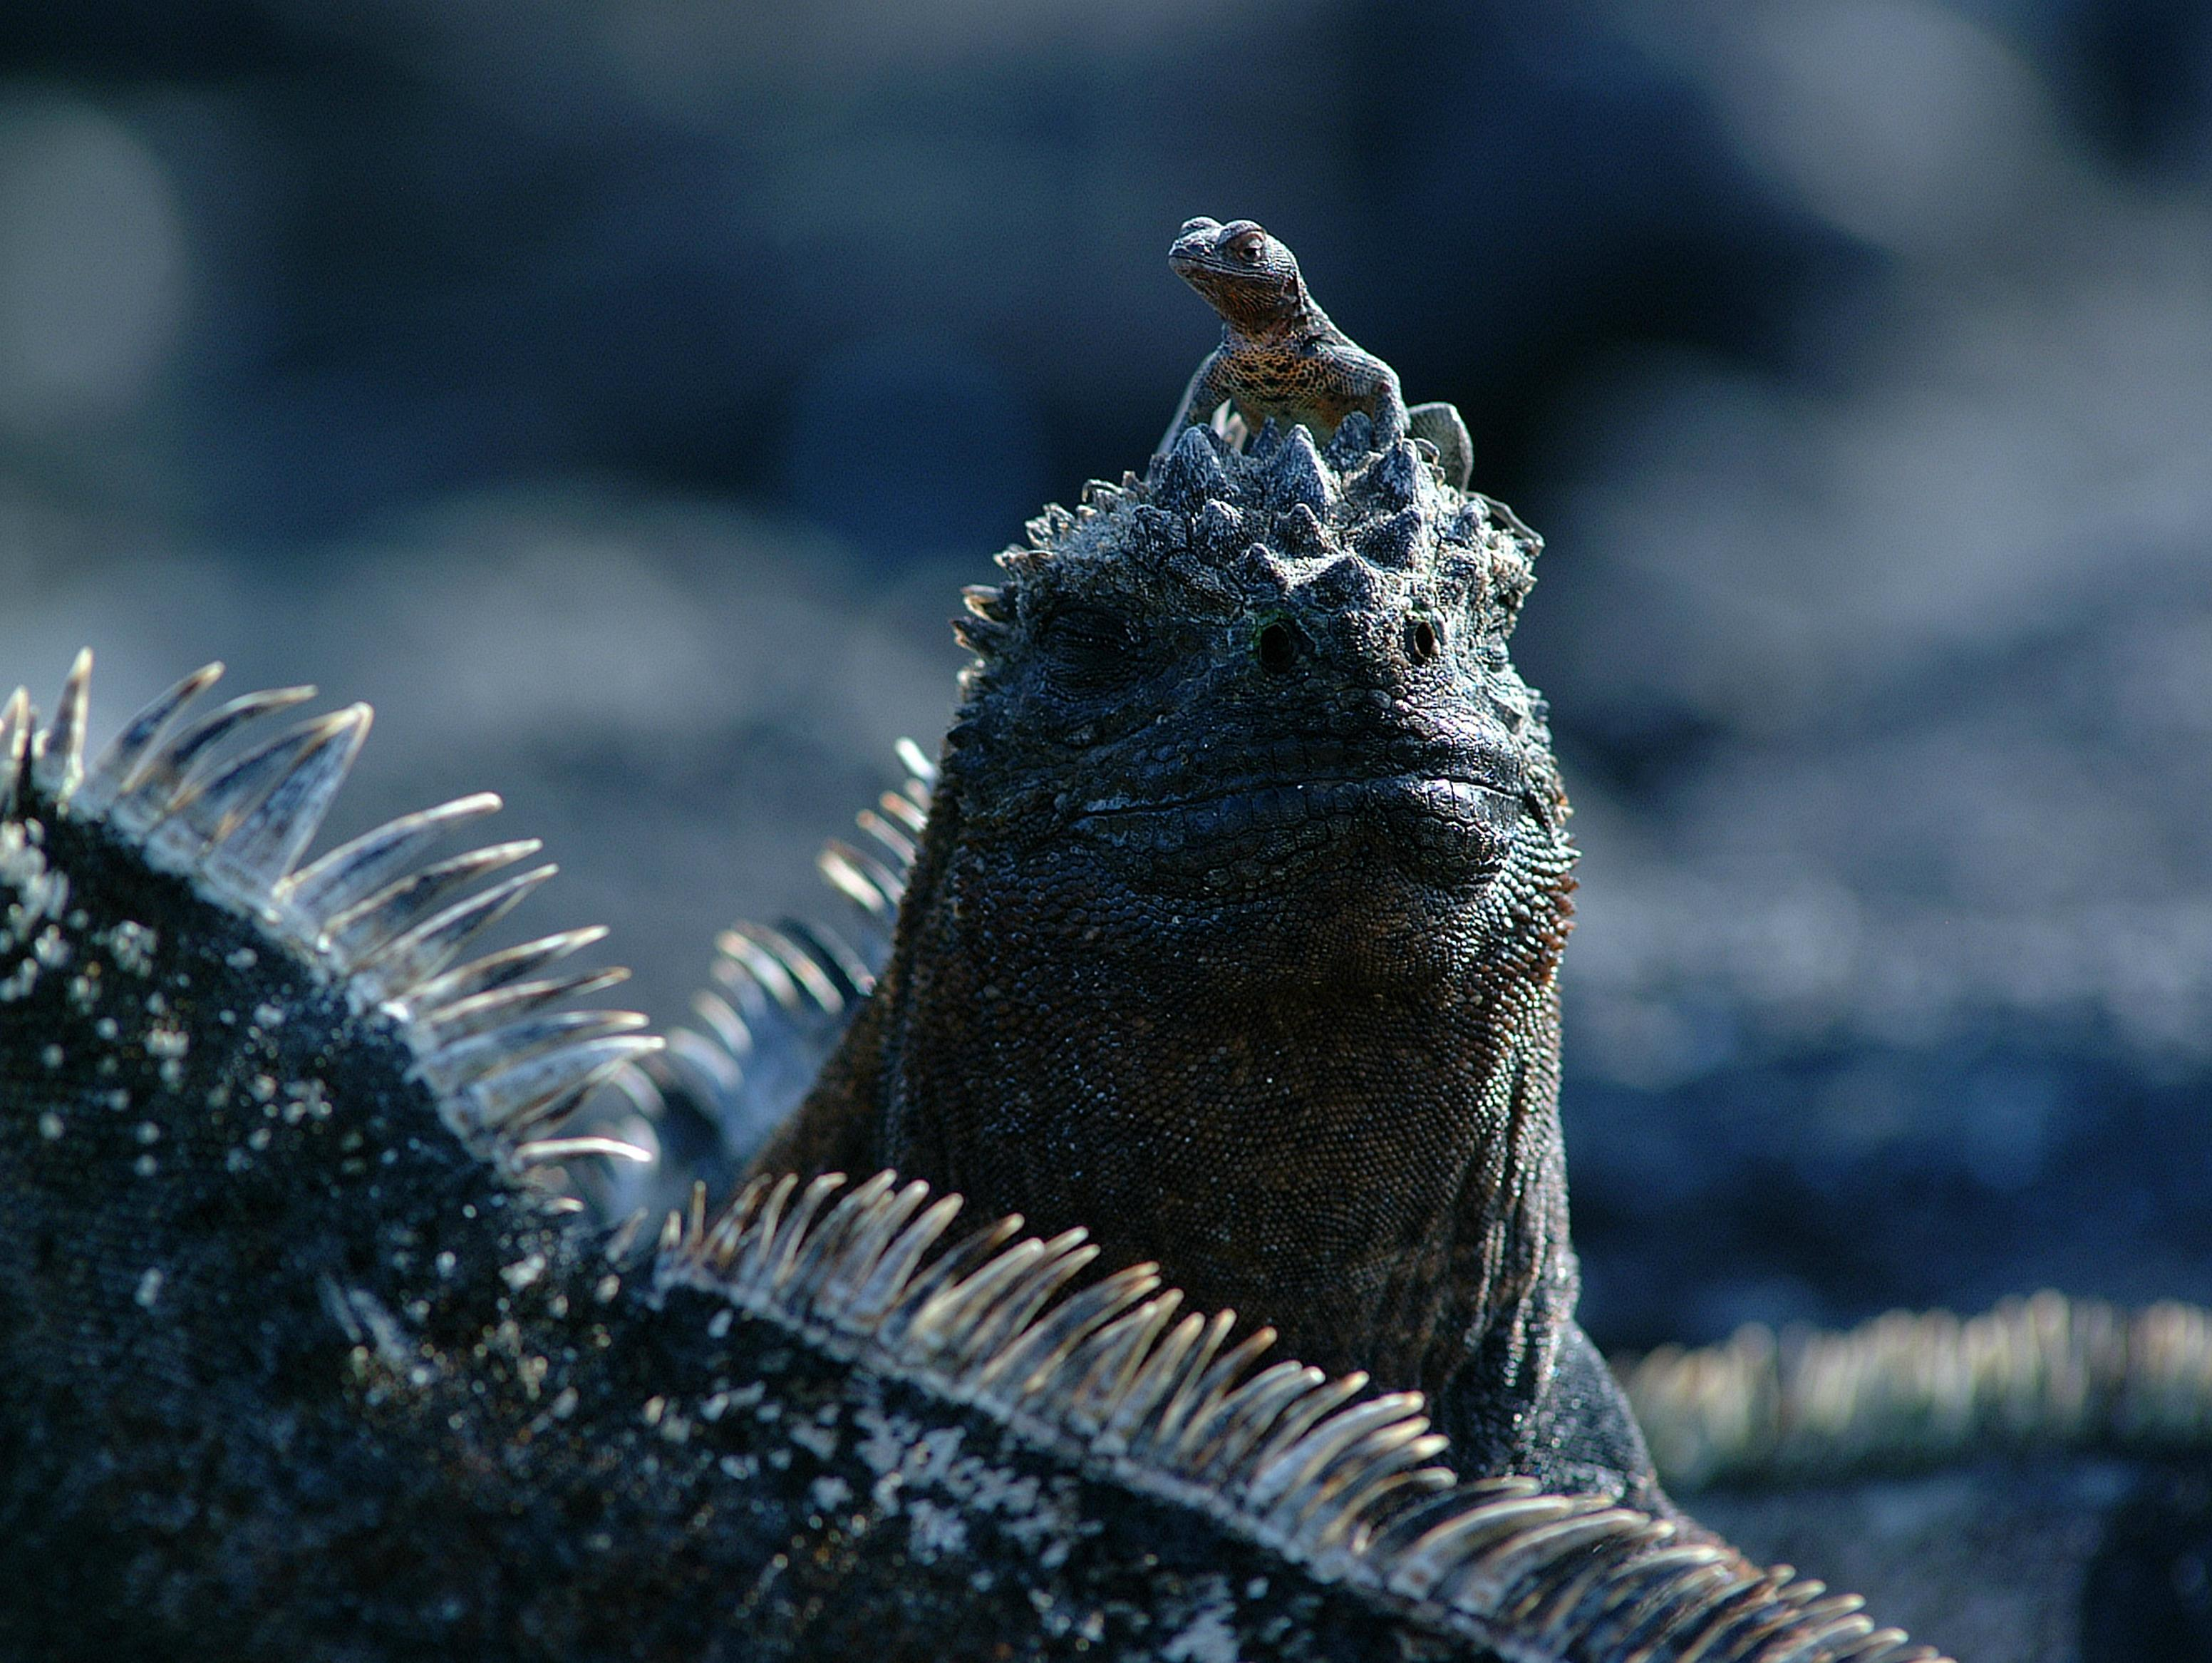 Marine Iguana - Endangered Species in the Galapagos